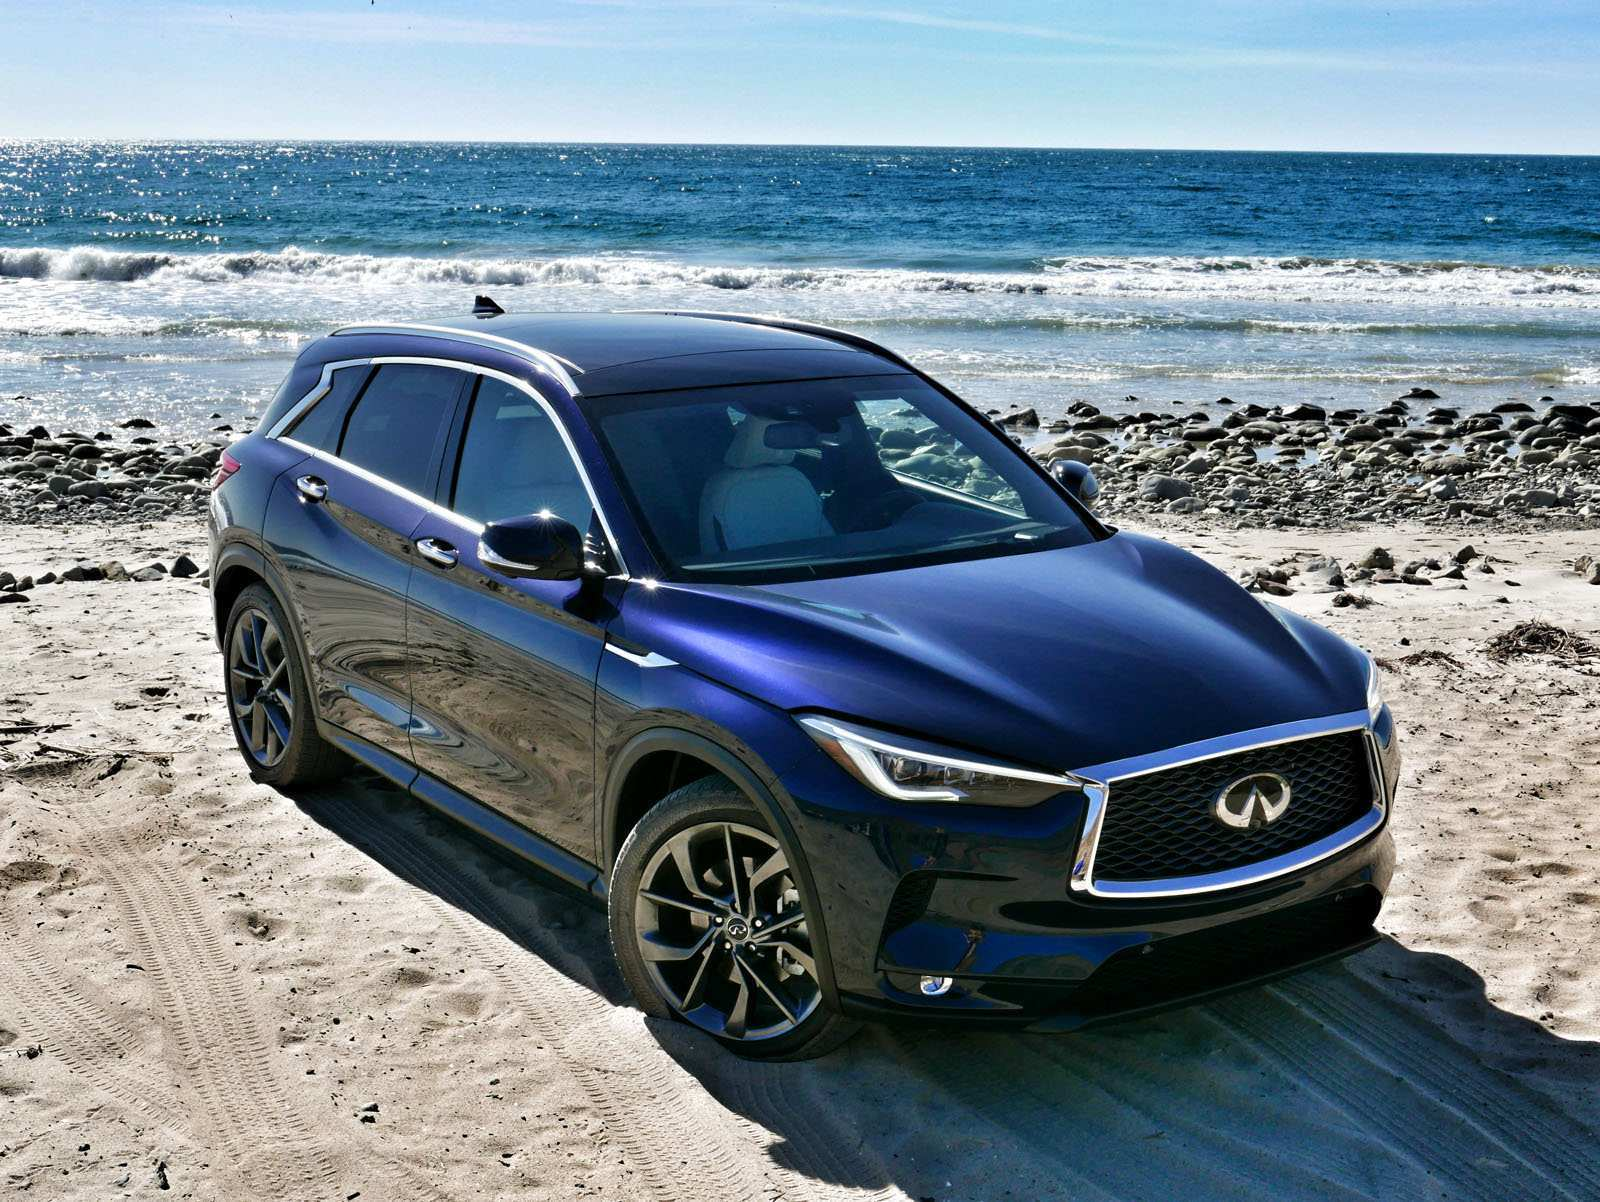 36 Best Review Best 2019 Infiniti Qx50 Autograph Price Style for Best 2019 Infiniti Qx50 Autograph Price